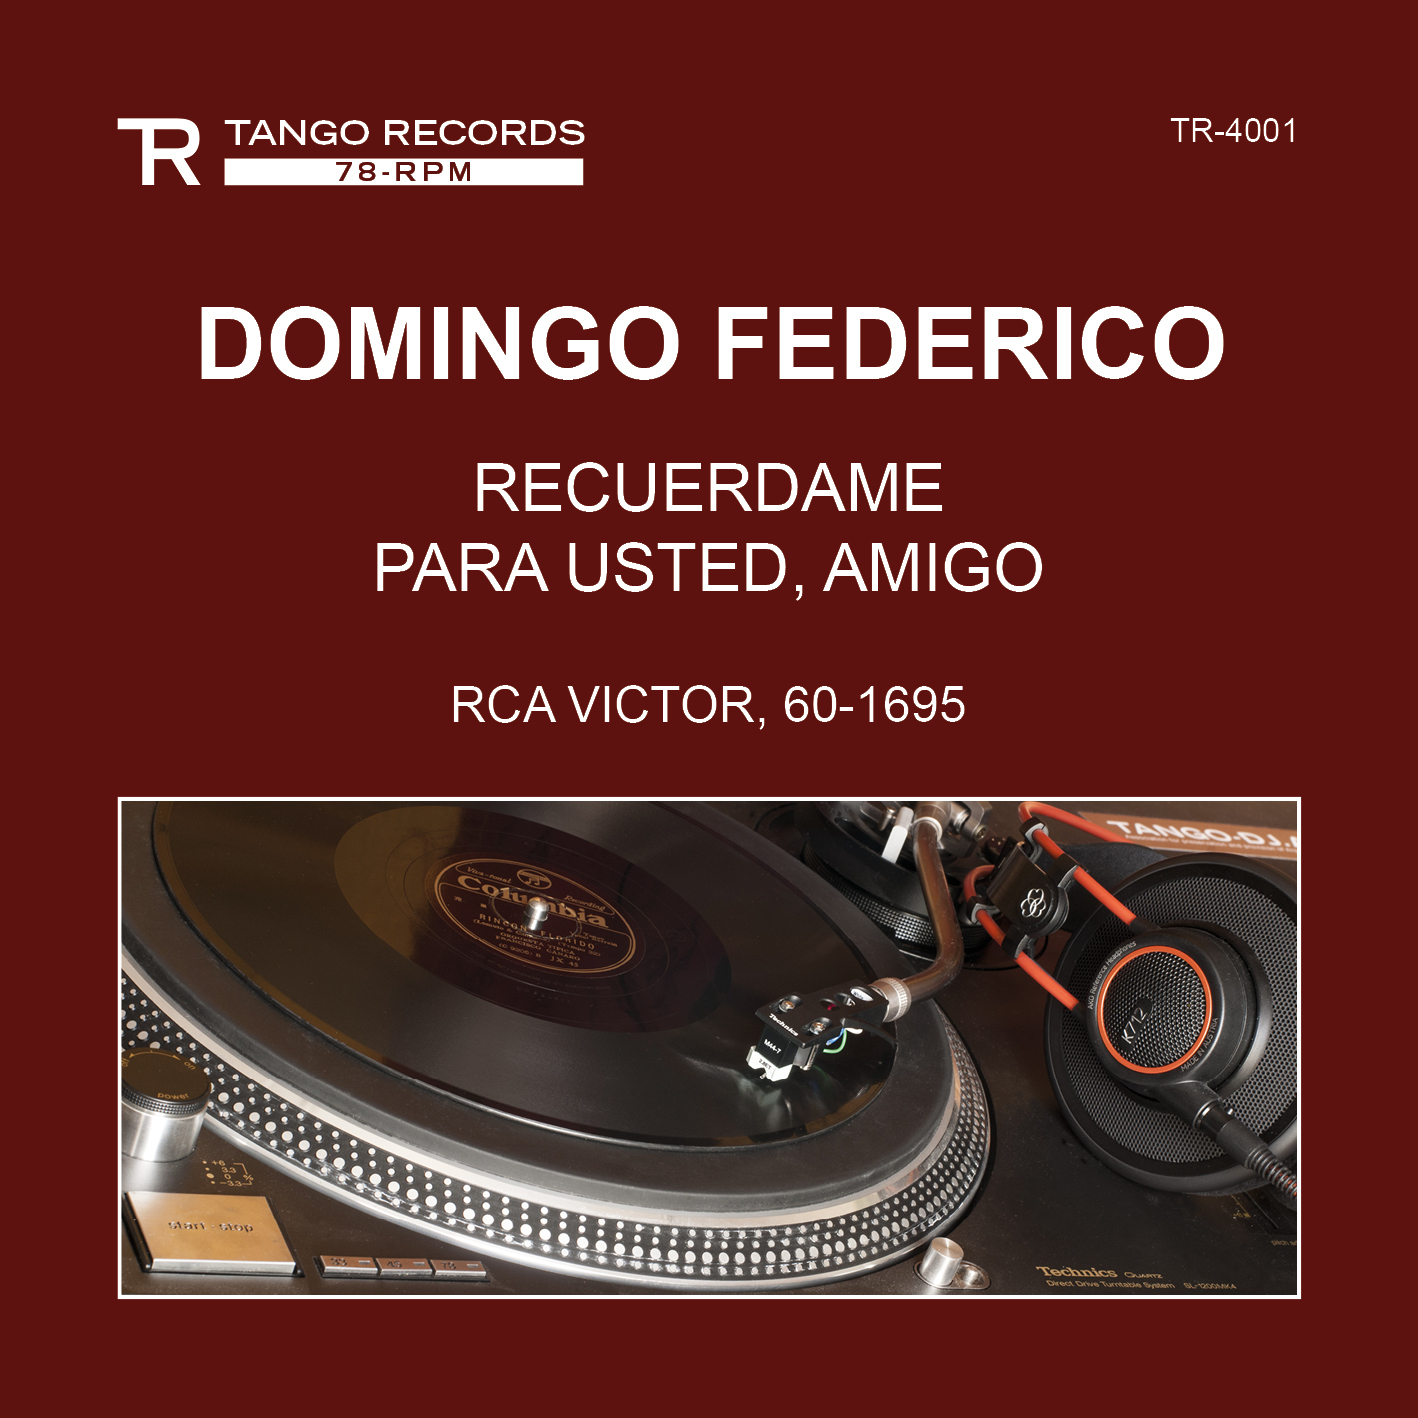 TANGO RECORDS 78-RPM Series Cover